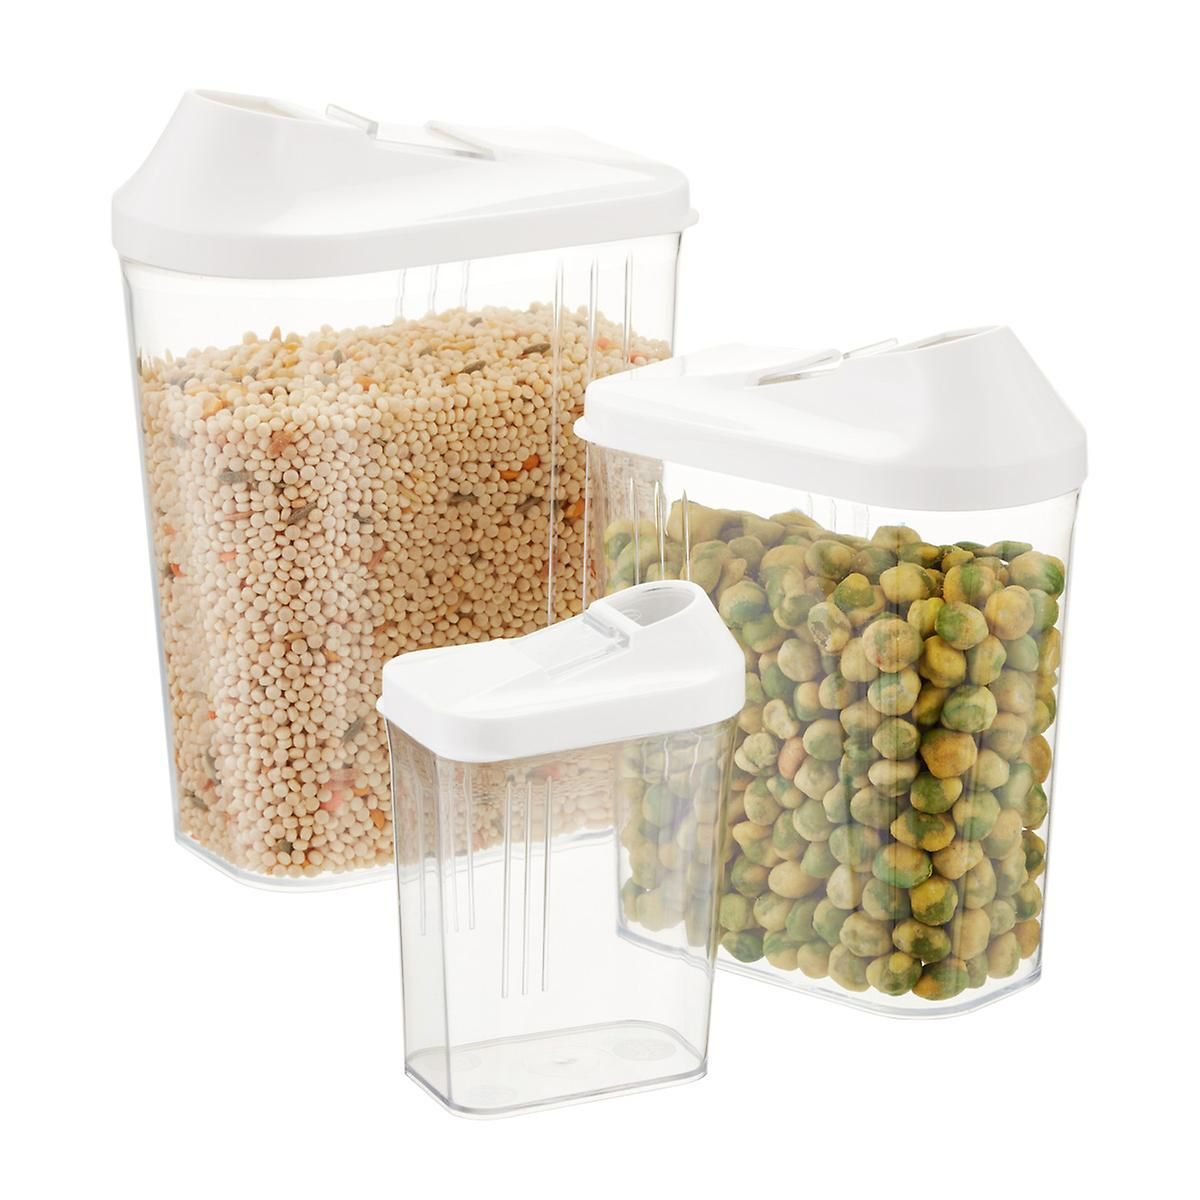 Slide & Pour Dispensers The Container Store For Nuts